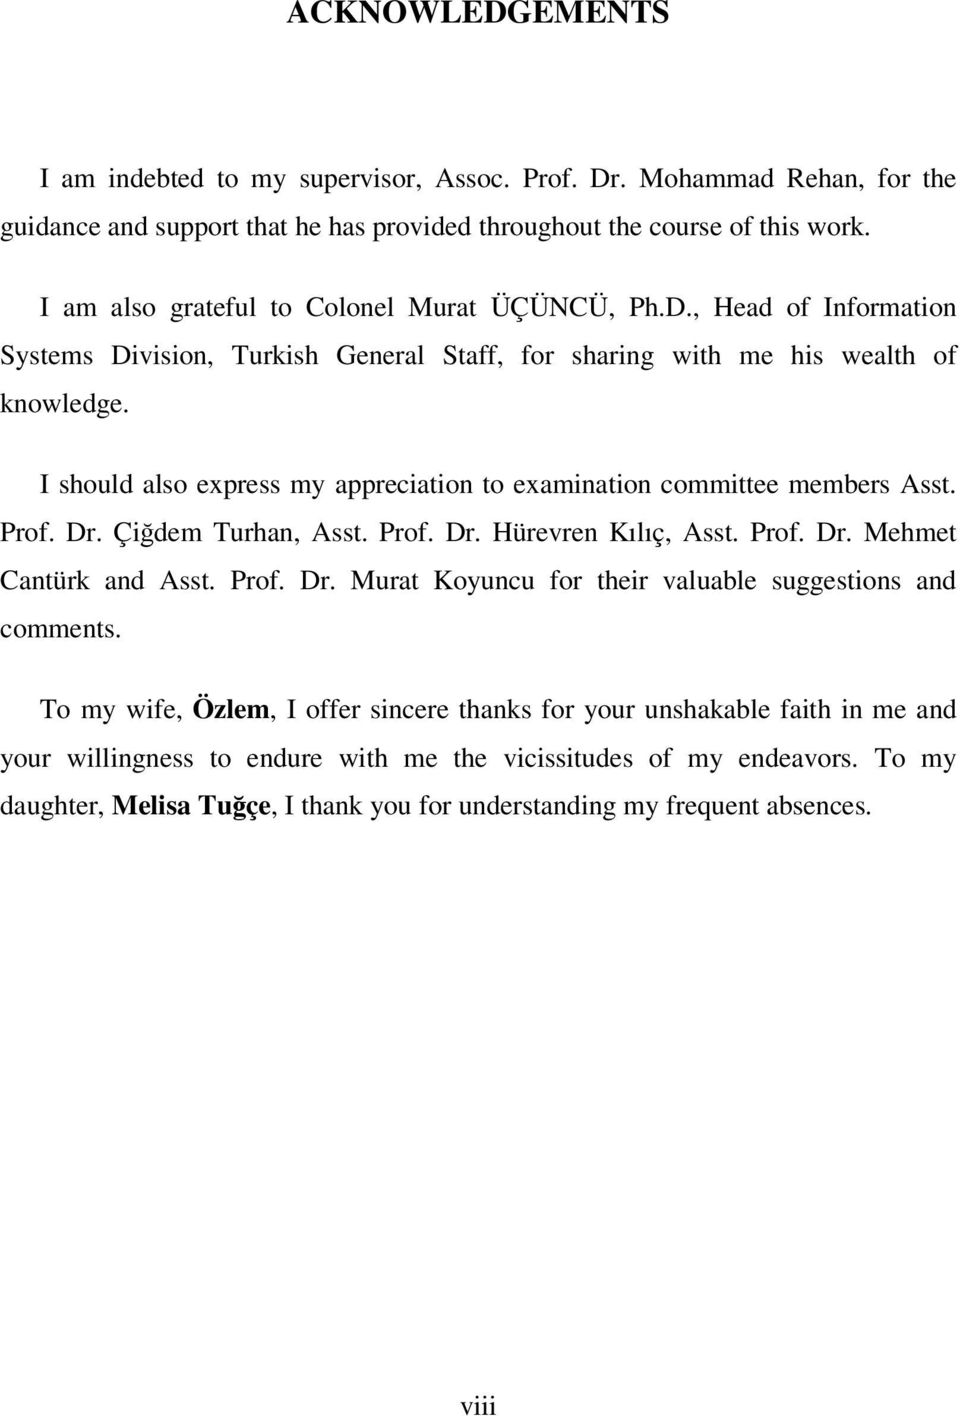 I should also express my appreciation to examination committee members Asst. Prof. Dr. Çiğdem Turhan, Asst. Prof. Dr. Hürevren Kılıç, Asst. Prof. Dr. Mehmet Cantürk and Asst. Prof. Dr. Murat Koyuncu for their valuable suggestions and comments.